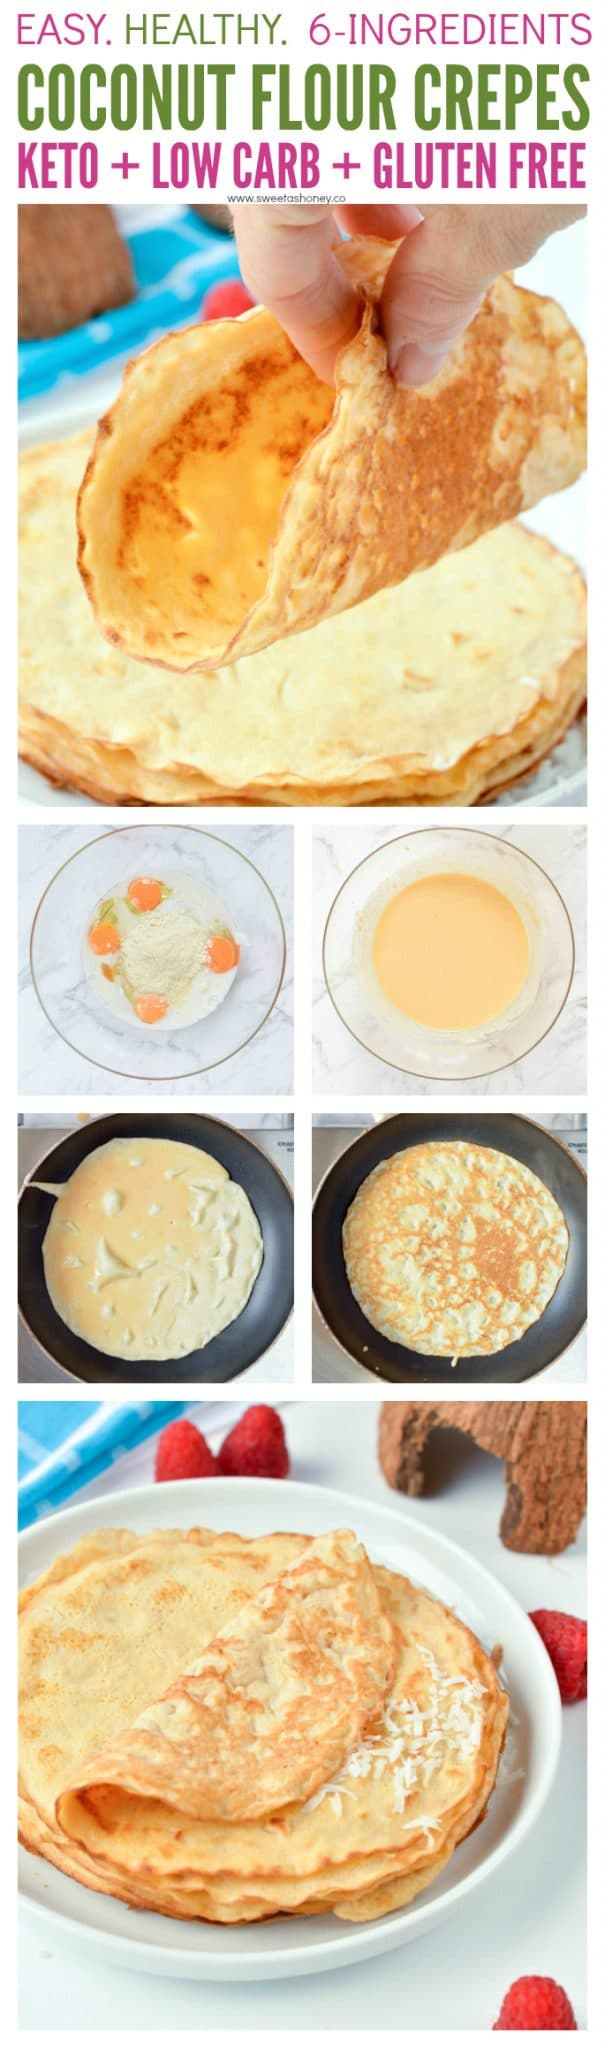 Coconut Flour Crepes - Easy Low Carb